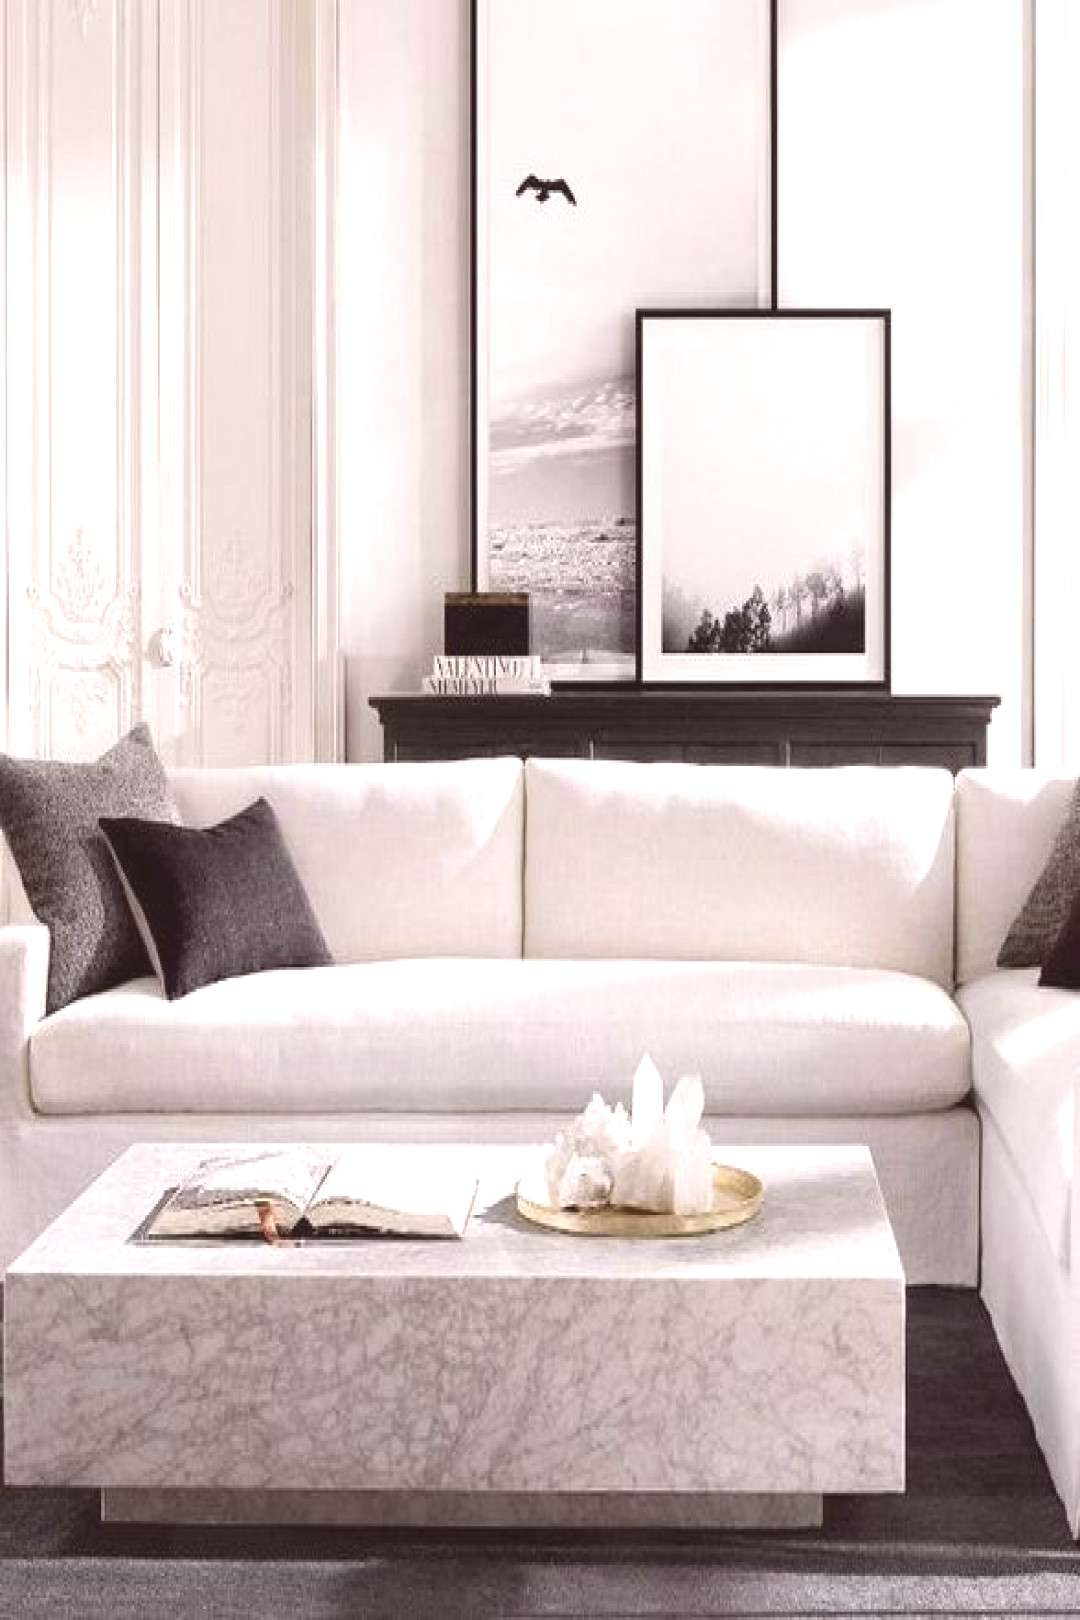 +27 What You Don't Know About Restoration Hardware Living Room Couch Inspiration May Shock You -